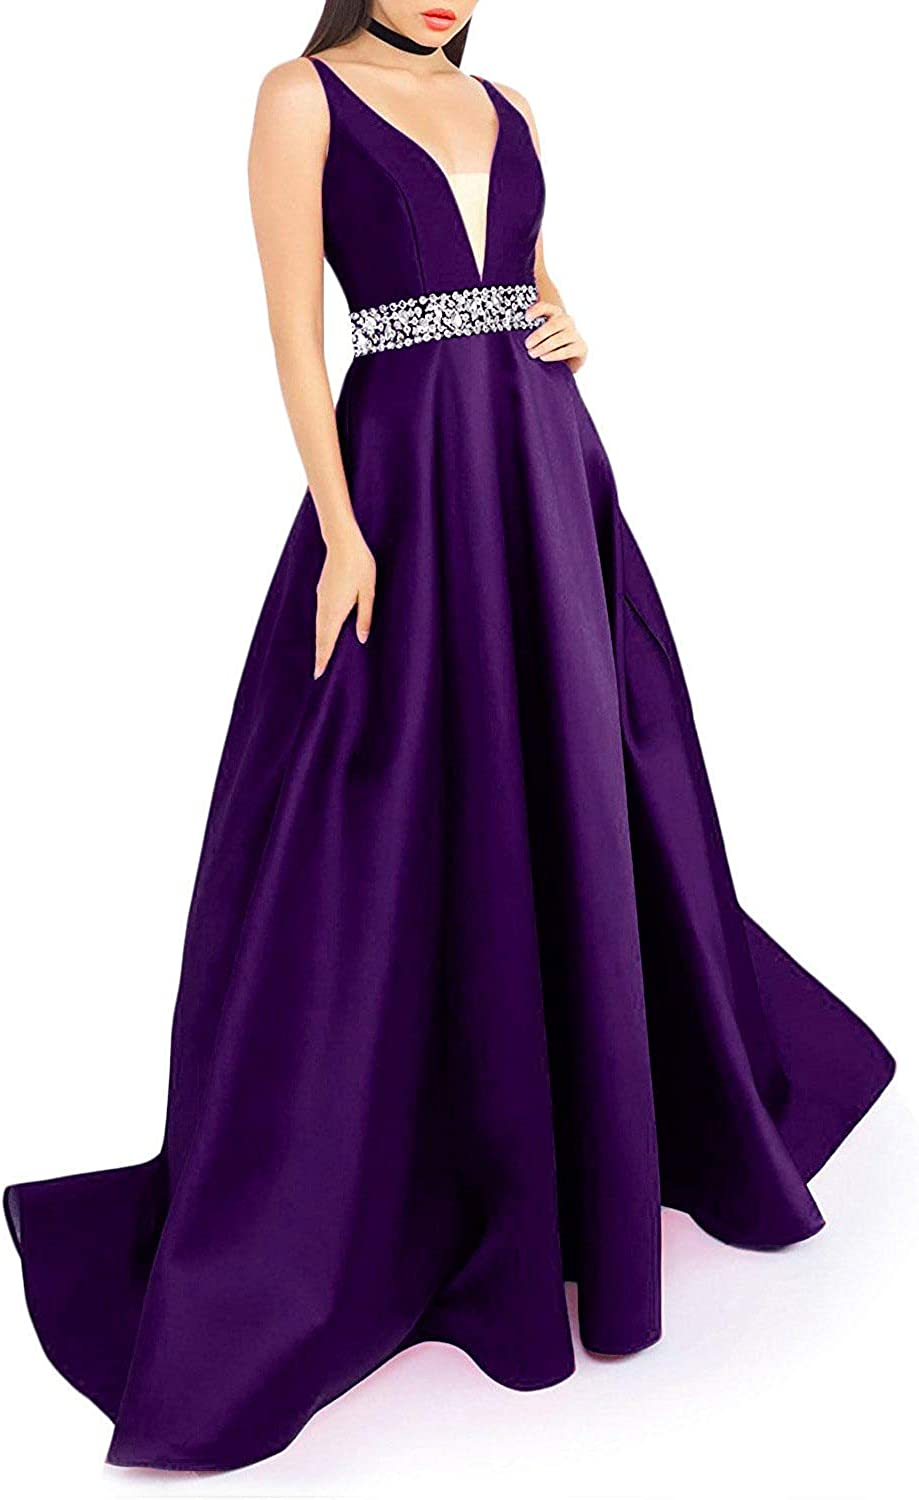 ZLQQ Women's VNeck Prom Dress with Pockets Long Beaded Evening Dresses Formal Gowns